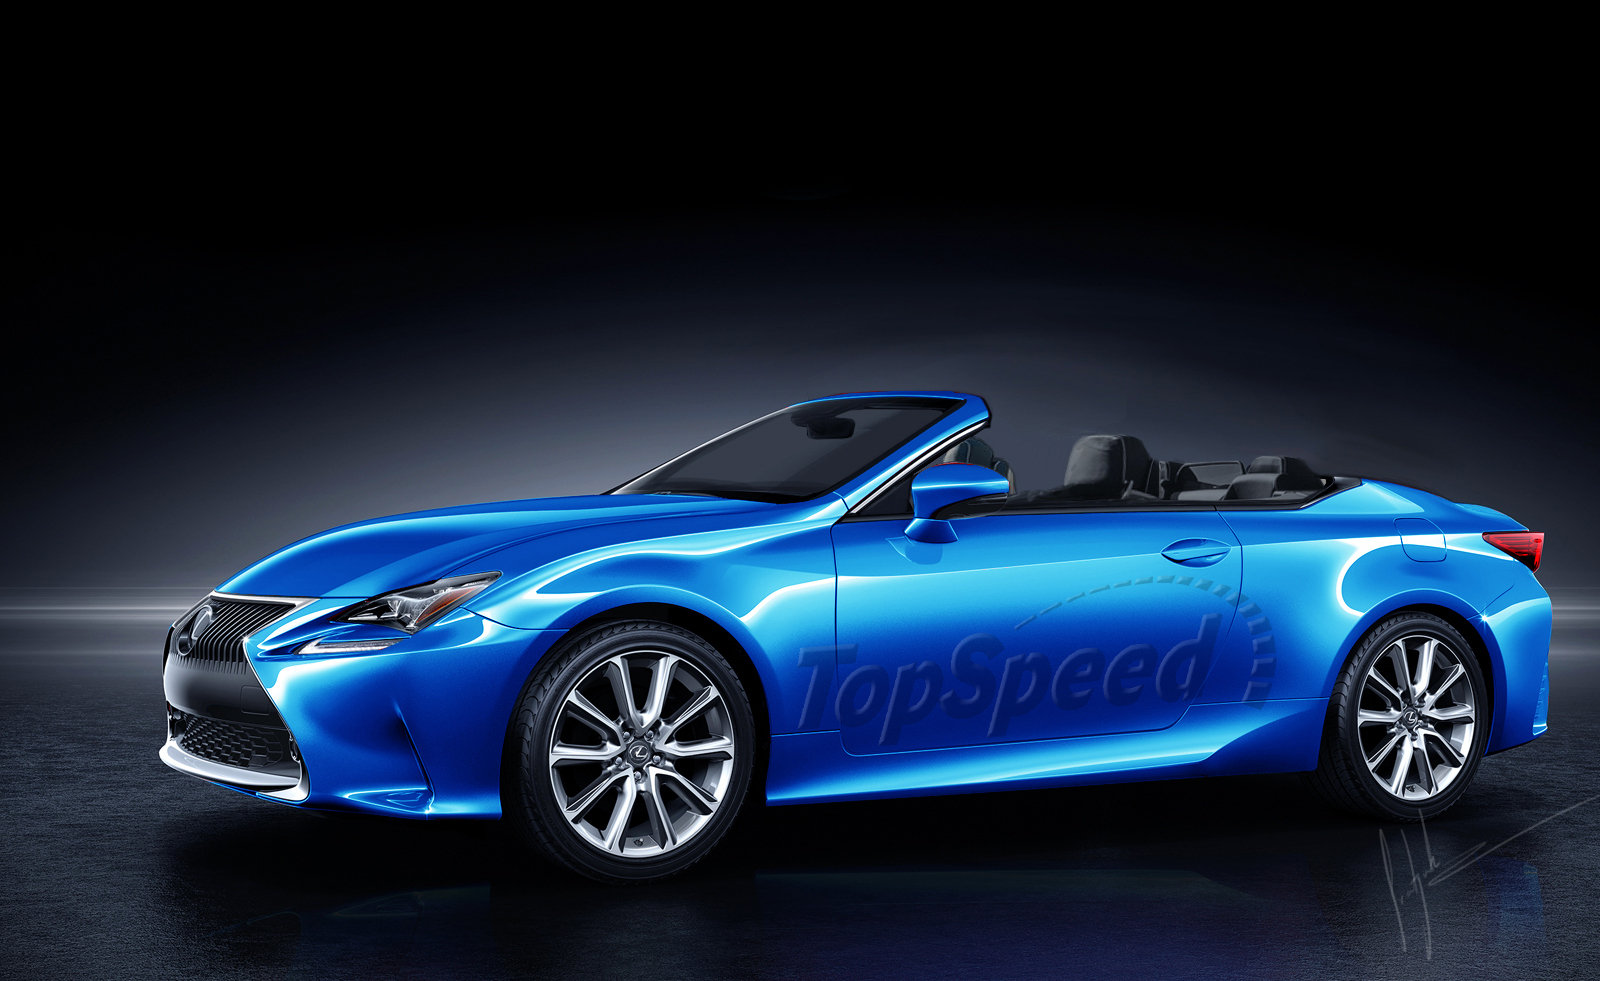 2018 lexus convertible.  2018 admirably better lexus 2017 sports car image with 2018 convertible